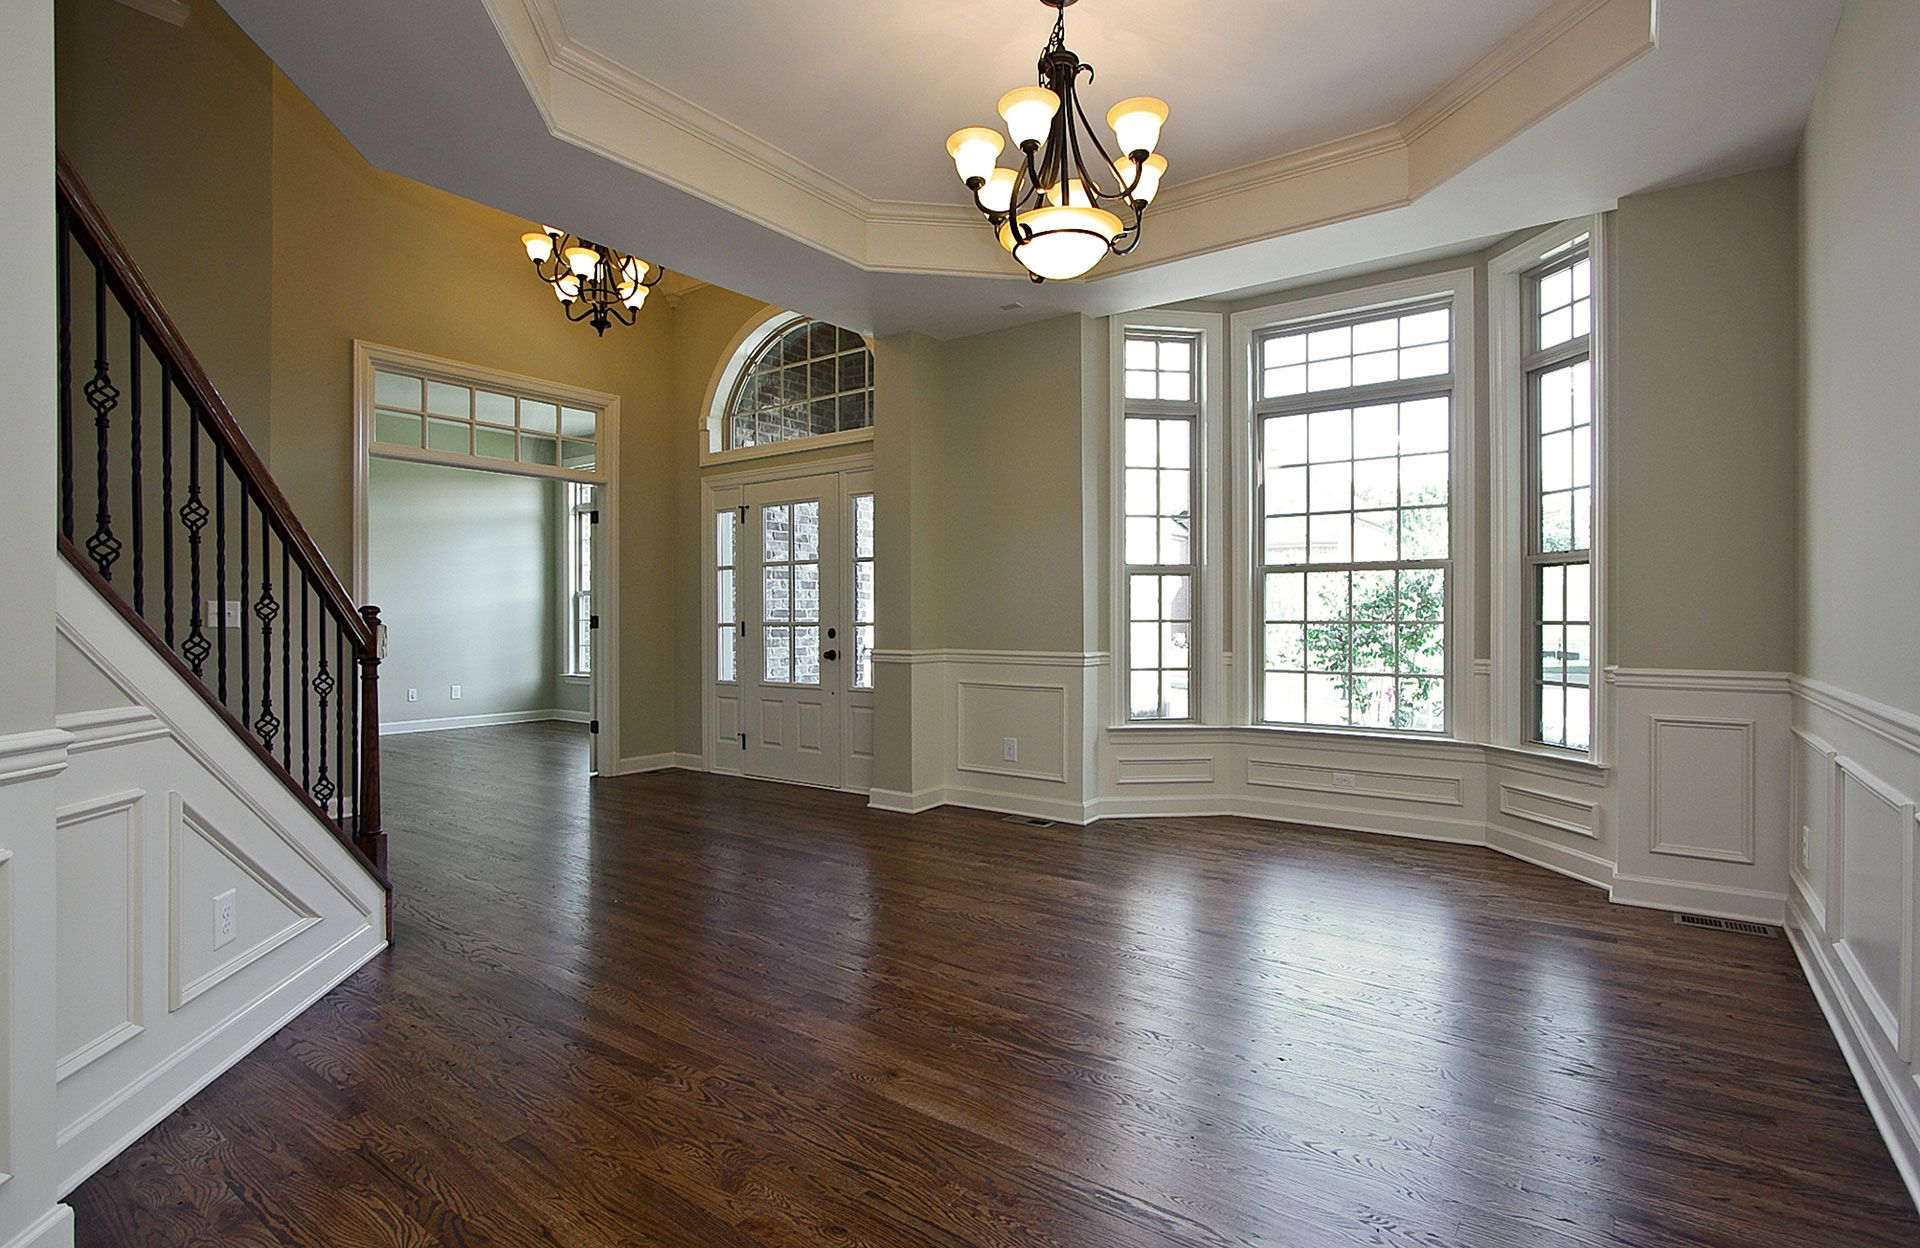 The Aberdeen Dining Room with decorative molding